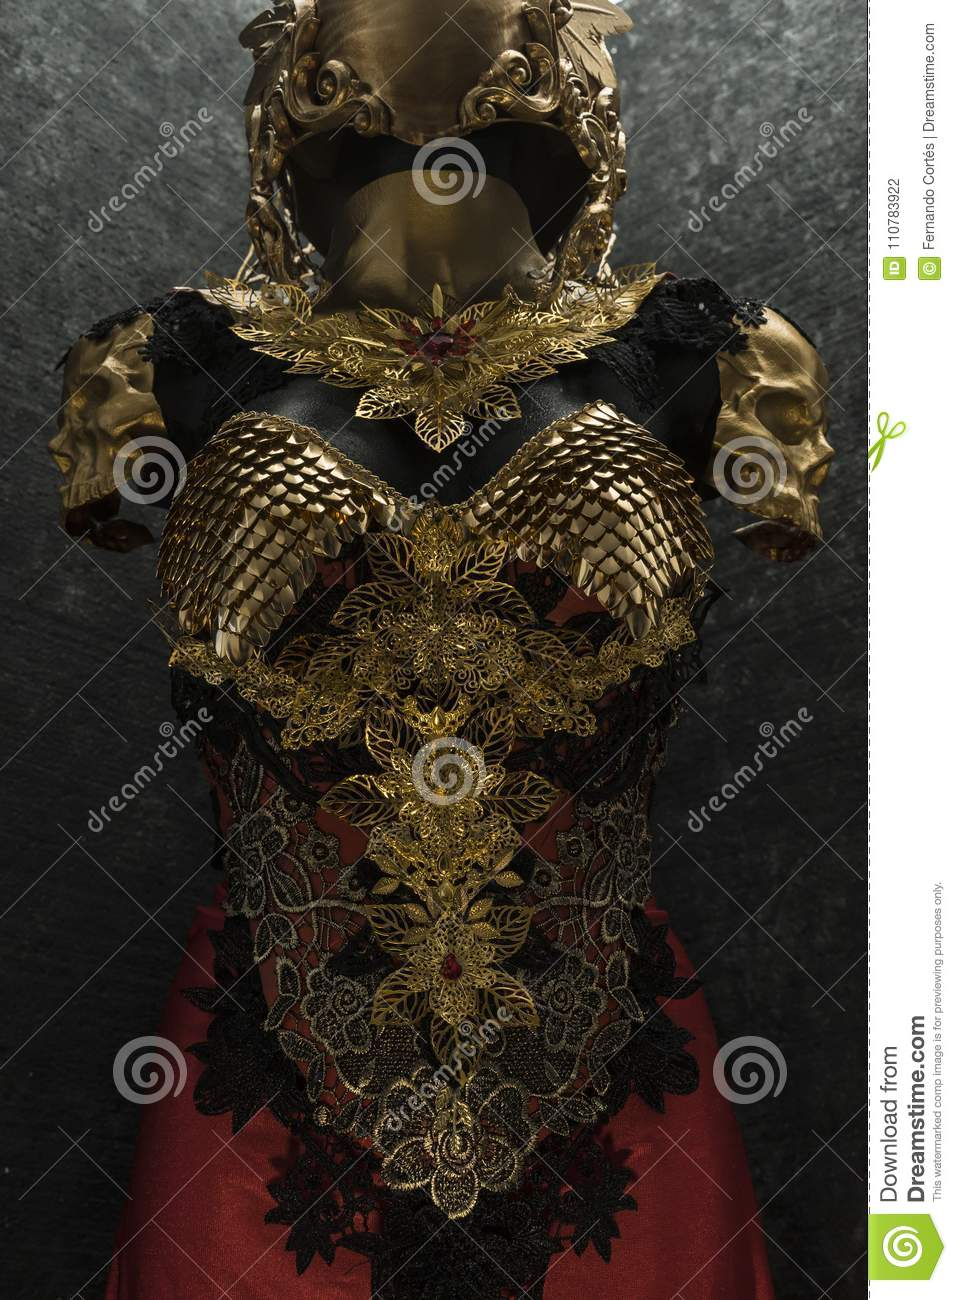 Gold Armor And Metal Pieces Handmade It Has A Golden Breastplate Of Dragon Scales With A Helmet Of Gothic Pieces And Red Feathers Editorial Photography Image Of Gold Cross 110783922 A wide variety of dragon armour options are available to you, such as material, use, and theme. https www dreamstime com gold armor metal pieces handmade has golden breastplate dragon scales helmet gothic pieces red feathers image110783922